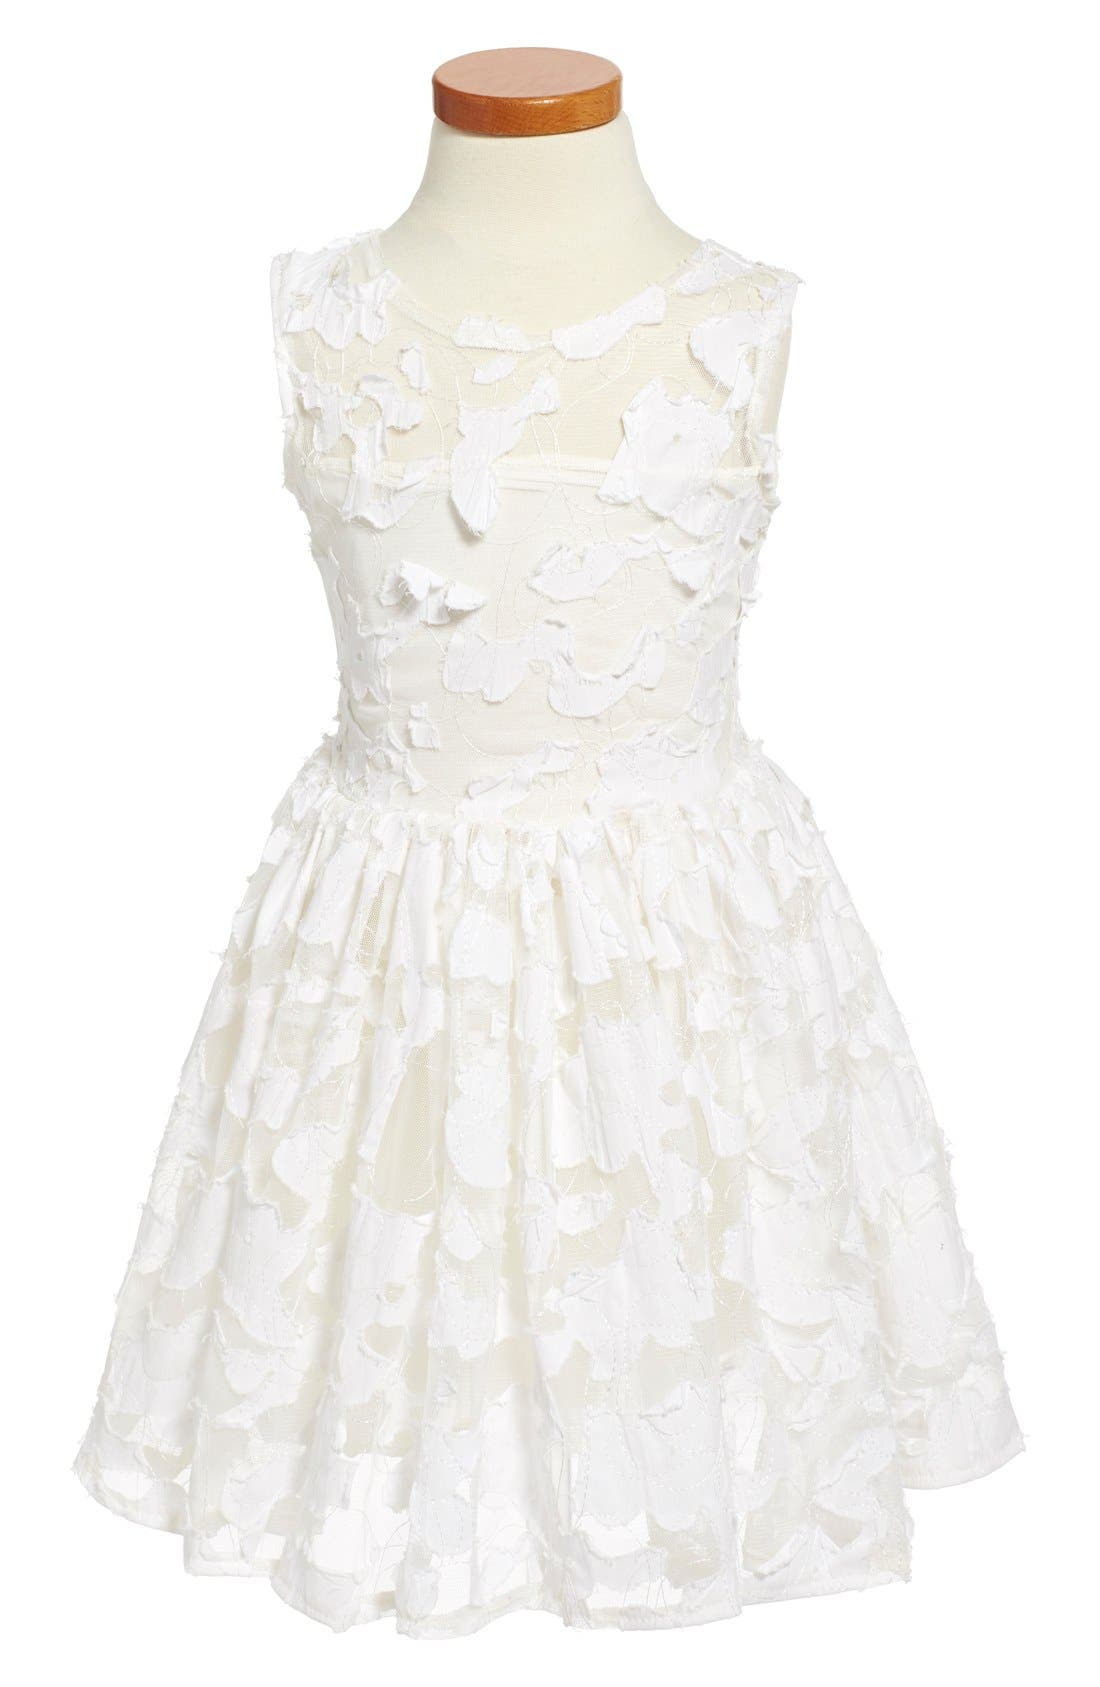 'Pretty in Ivory' Party Dress,                             Main thumbnail 1, color,